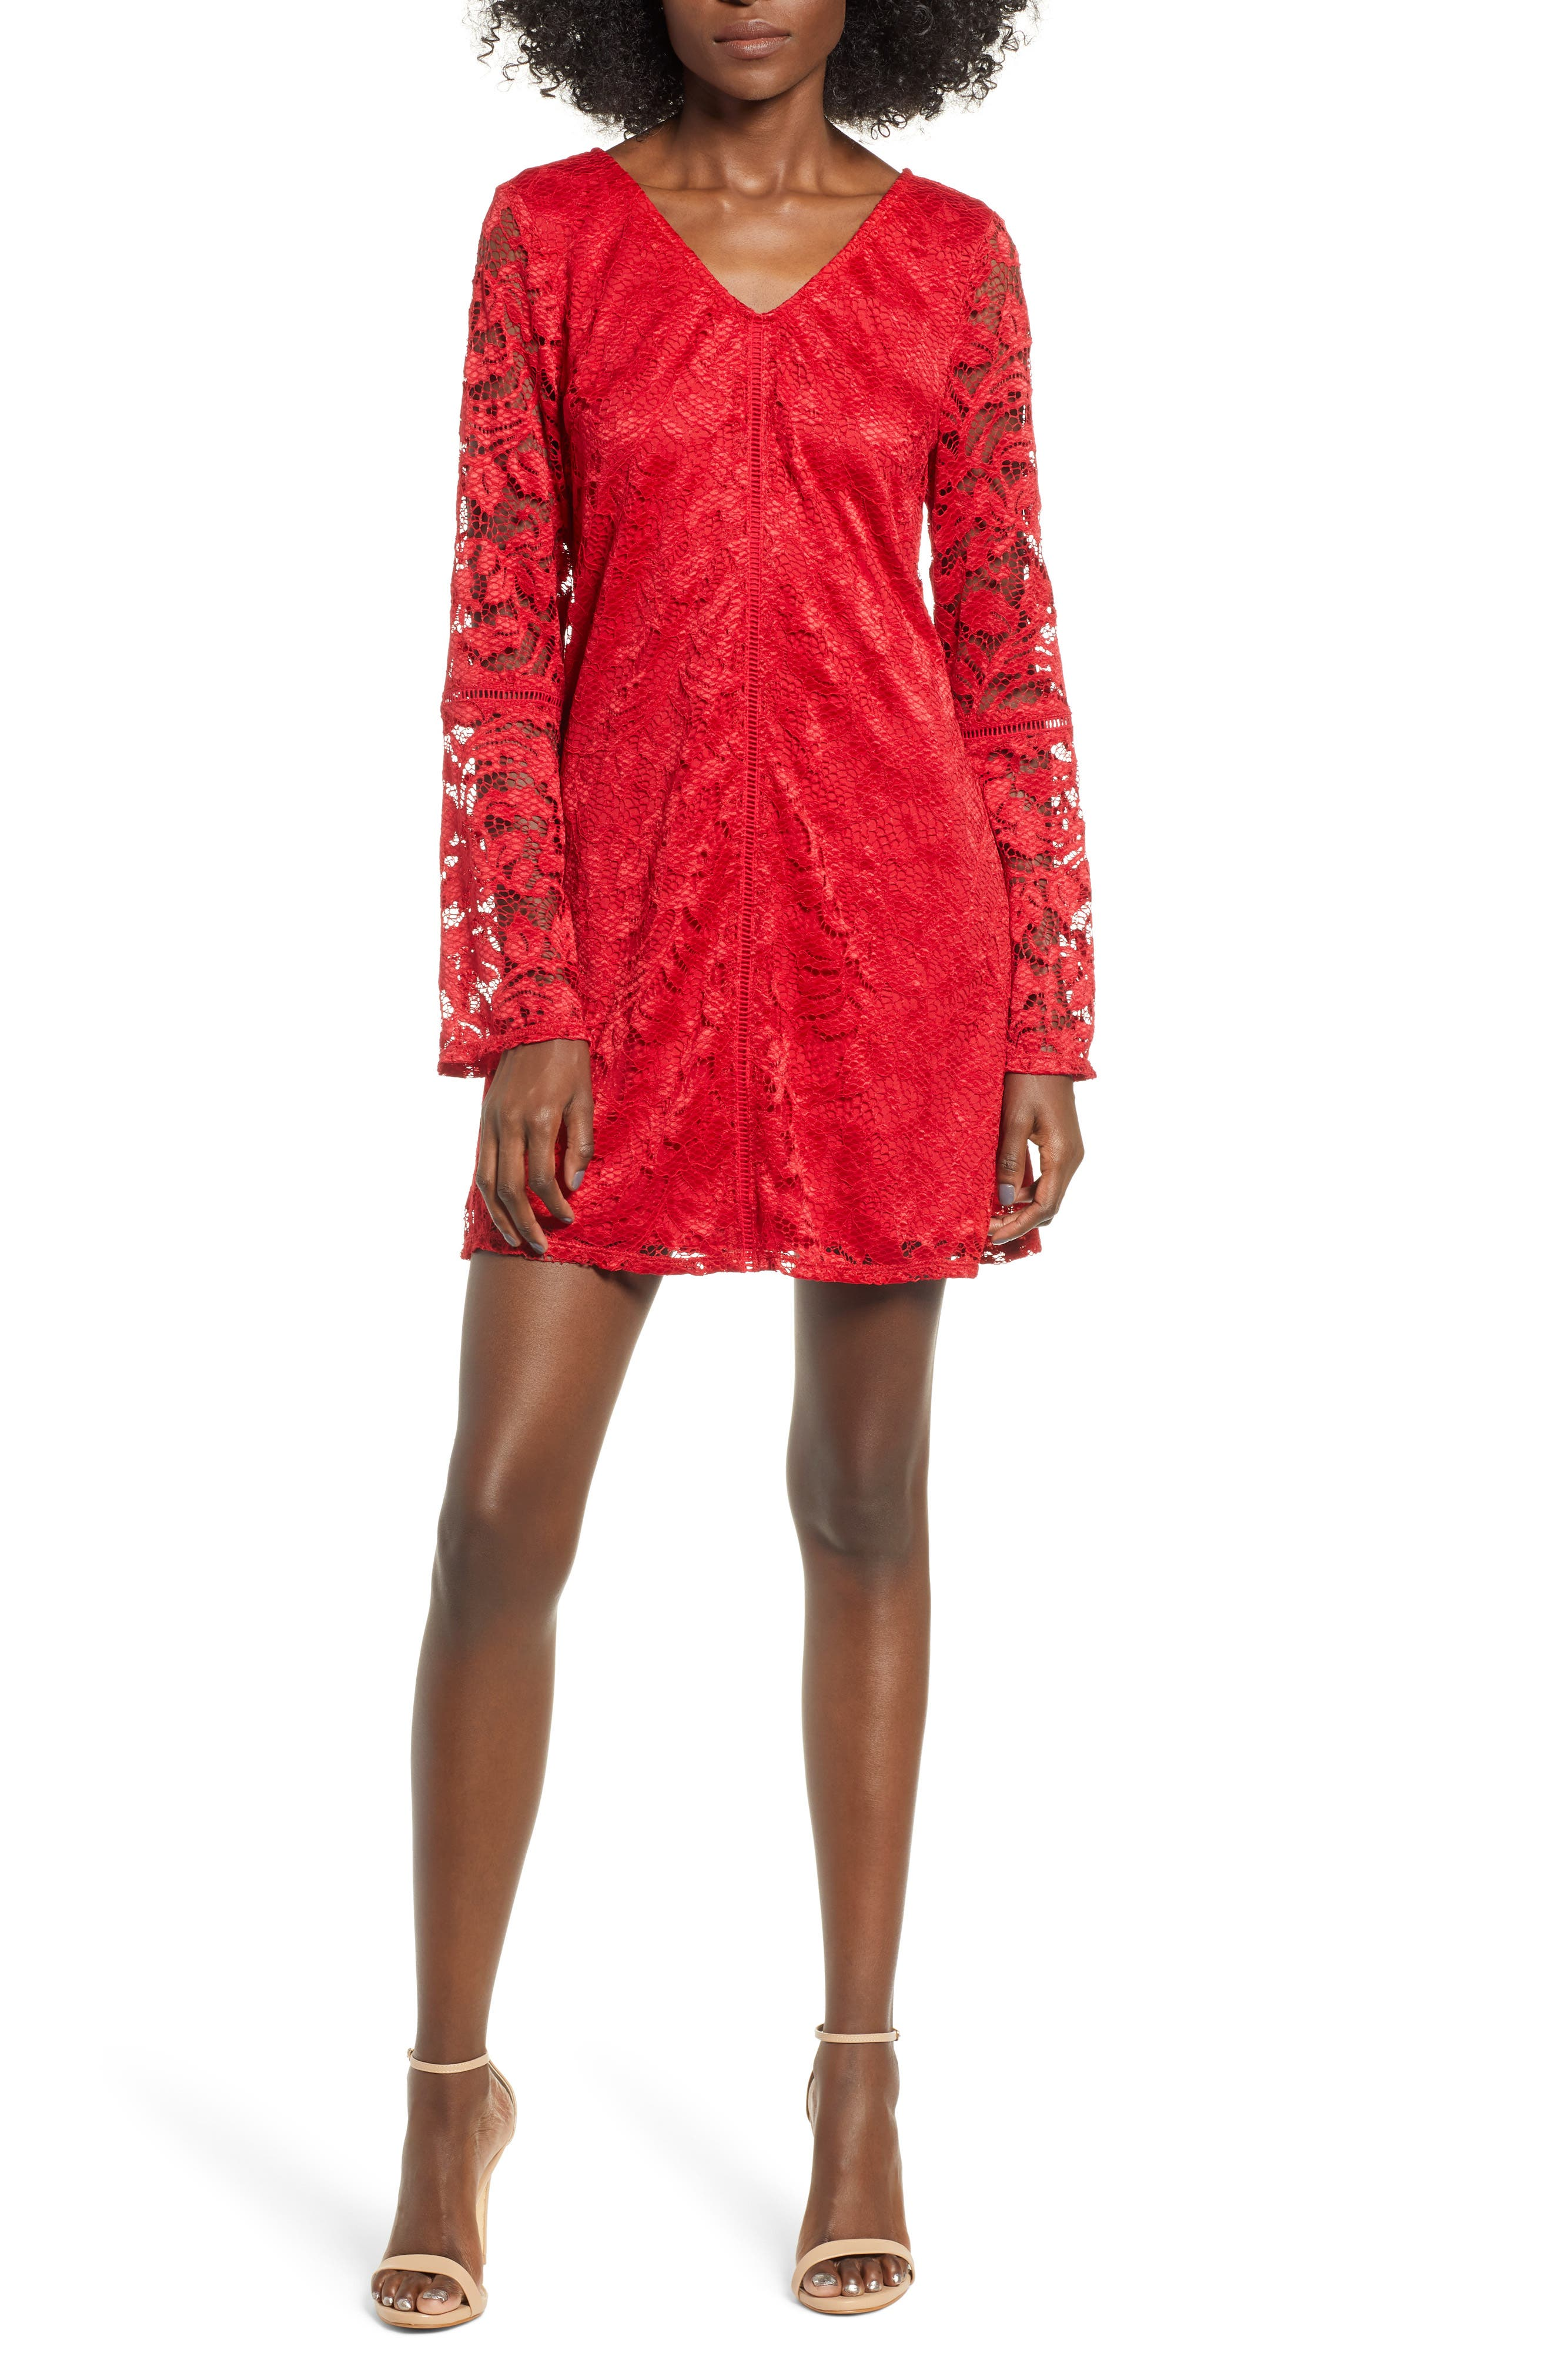 Speechless Lace Neck Shift Dress, Red